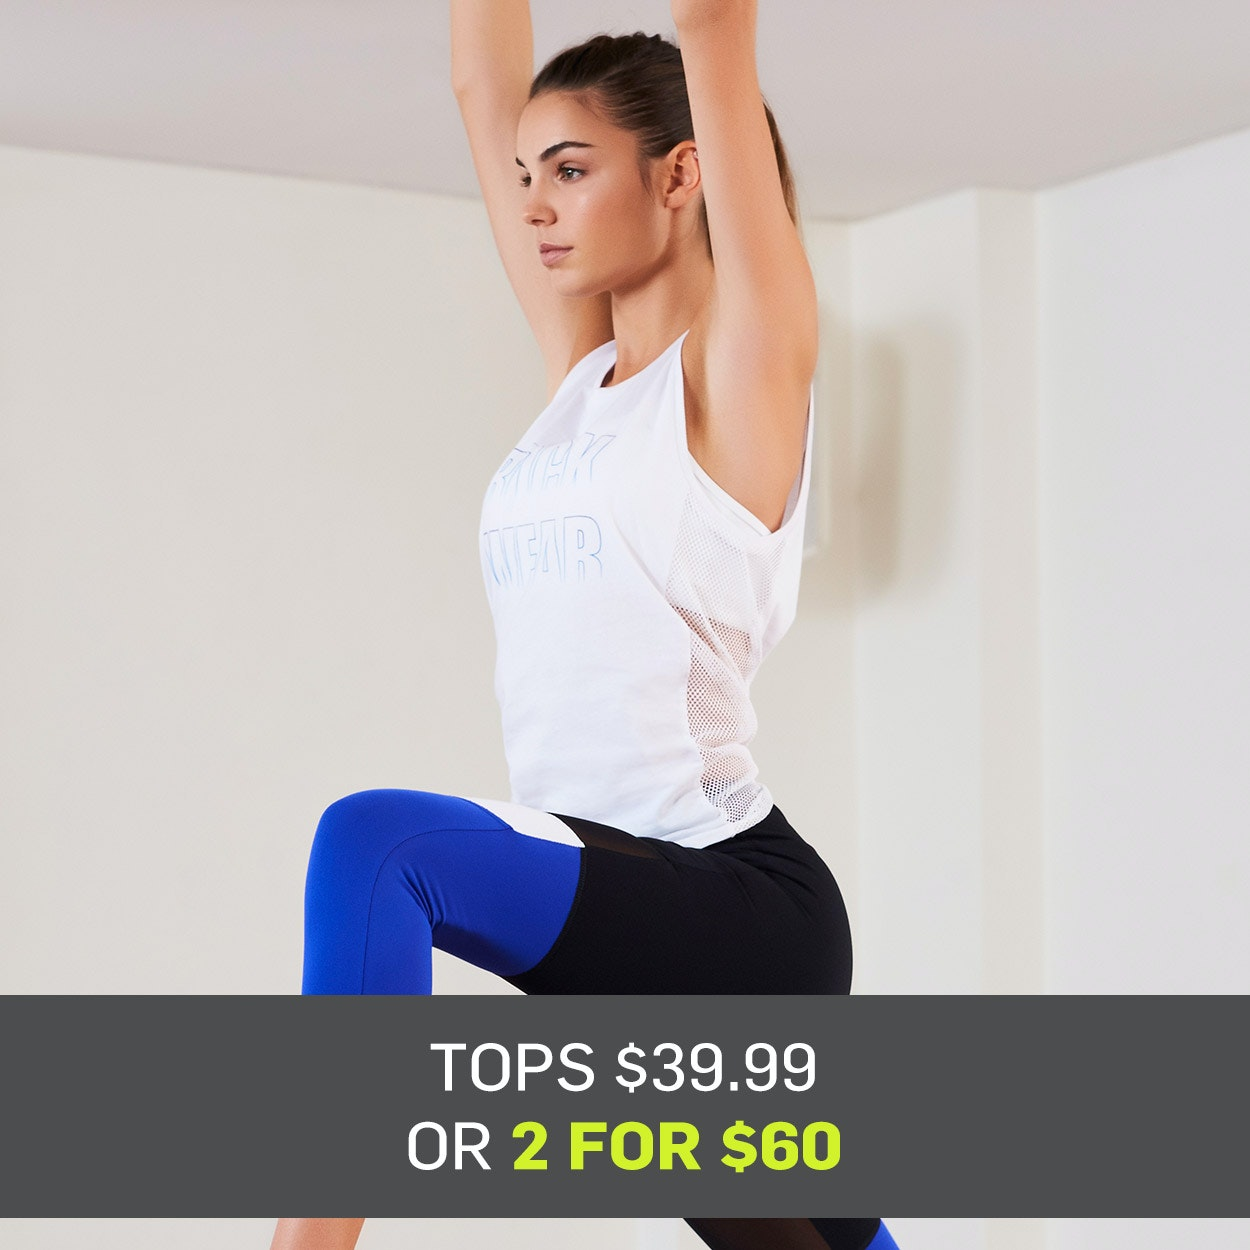 Womens Work out Tops from $39.99 or Get 2 for $60